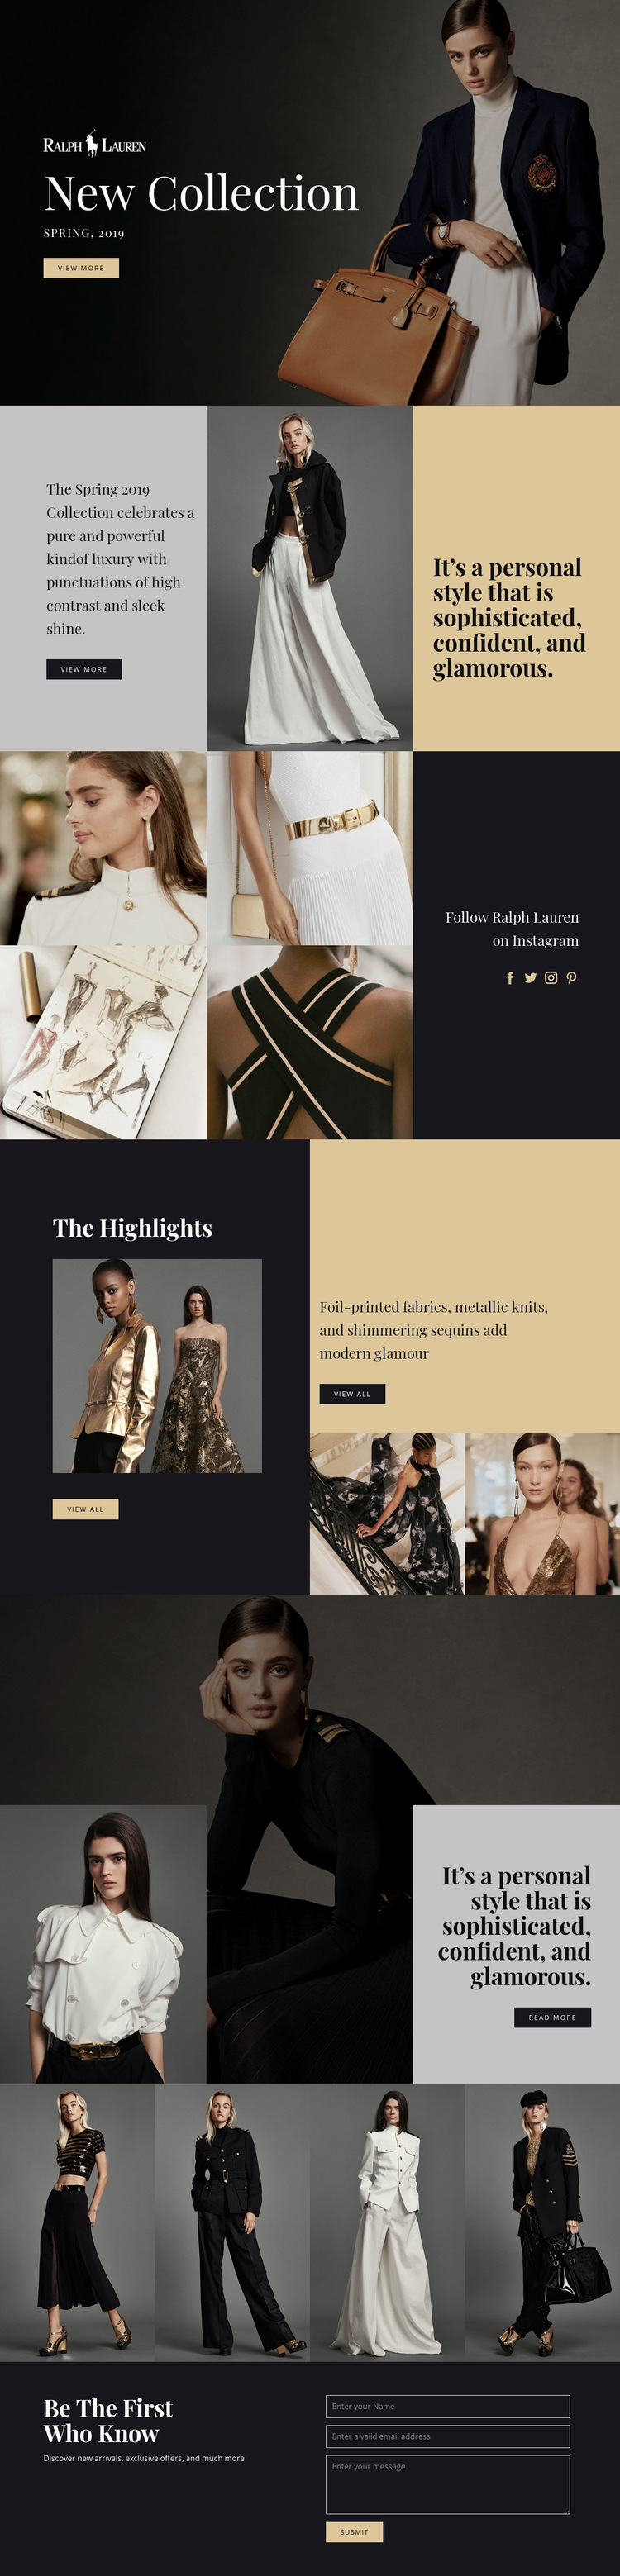 Ralph Lauren fashion Website Builder